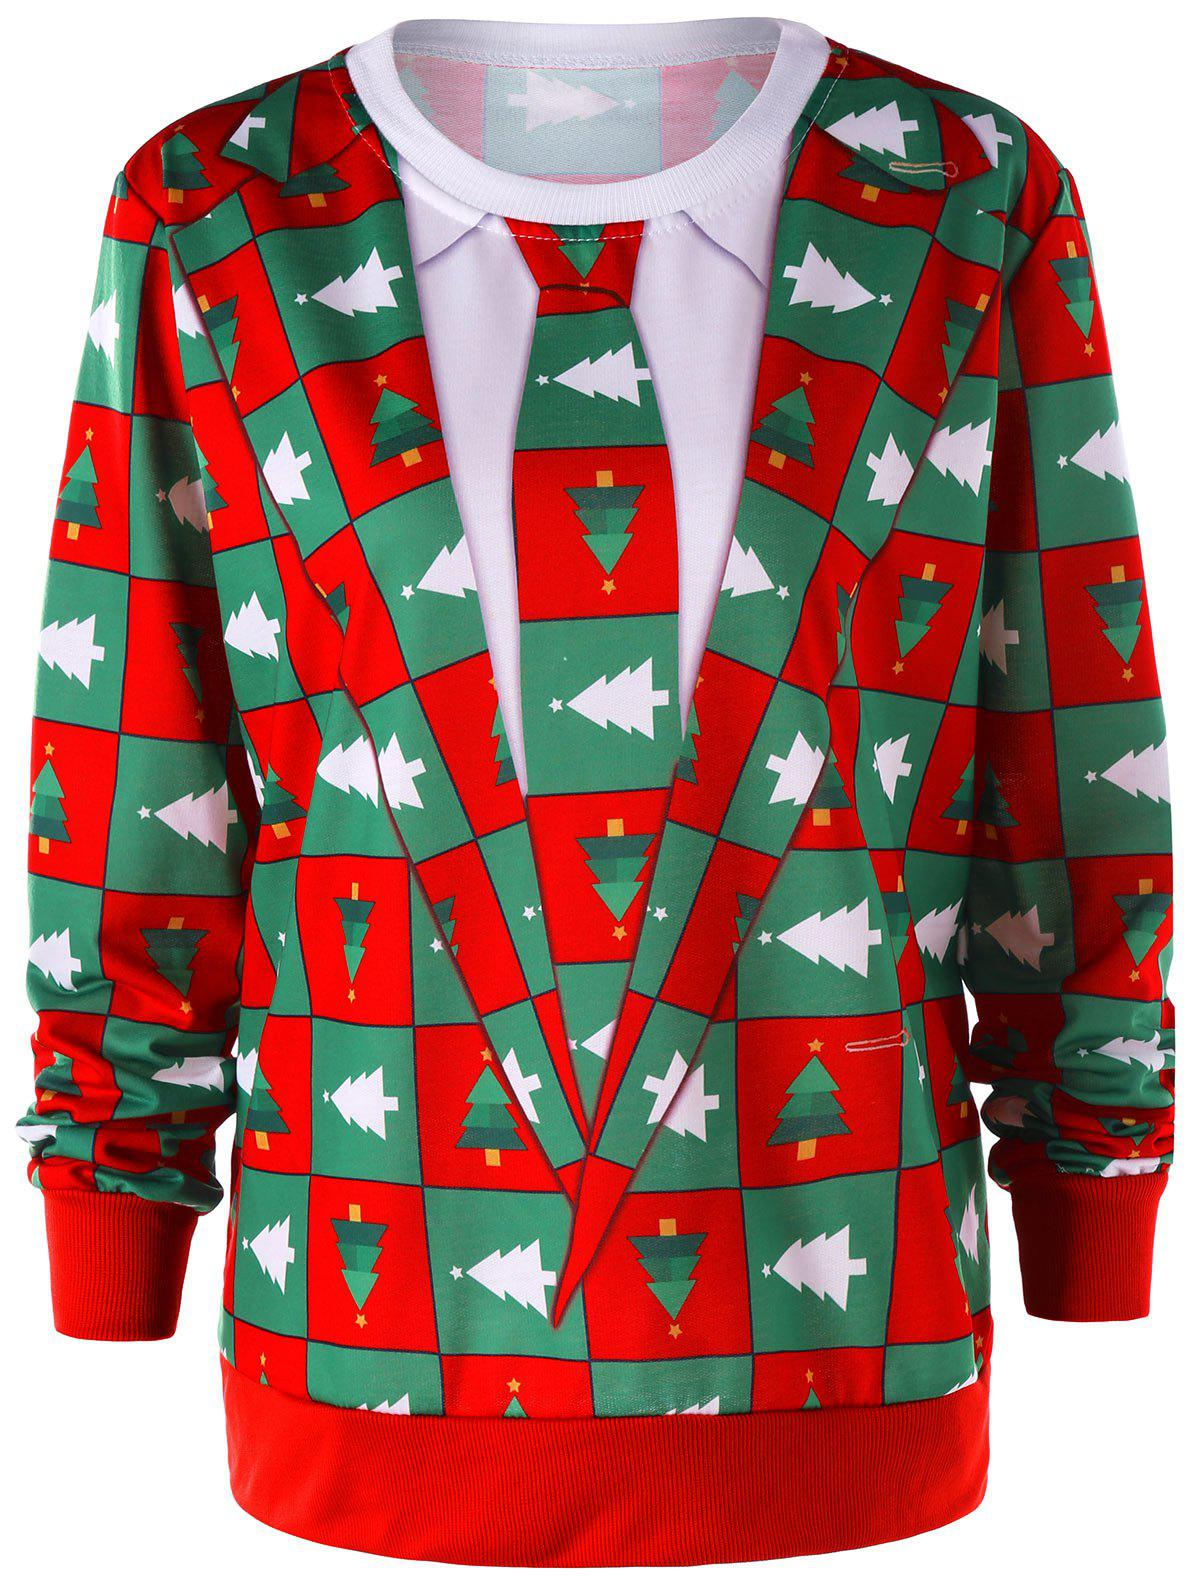 Pinetree Christmas Crew Neck Sweatshirt - COLORMIX M